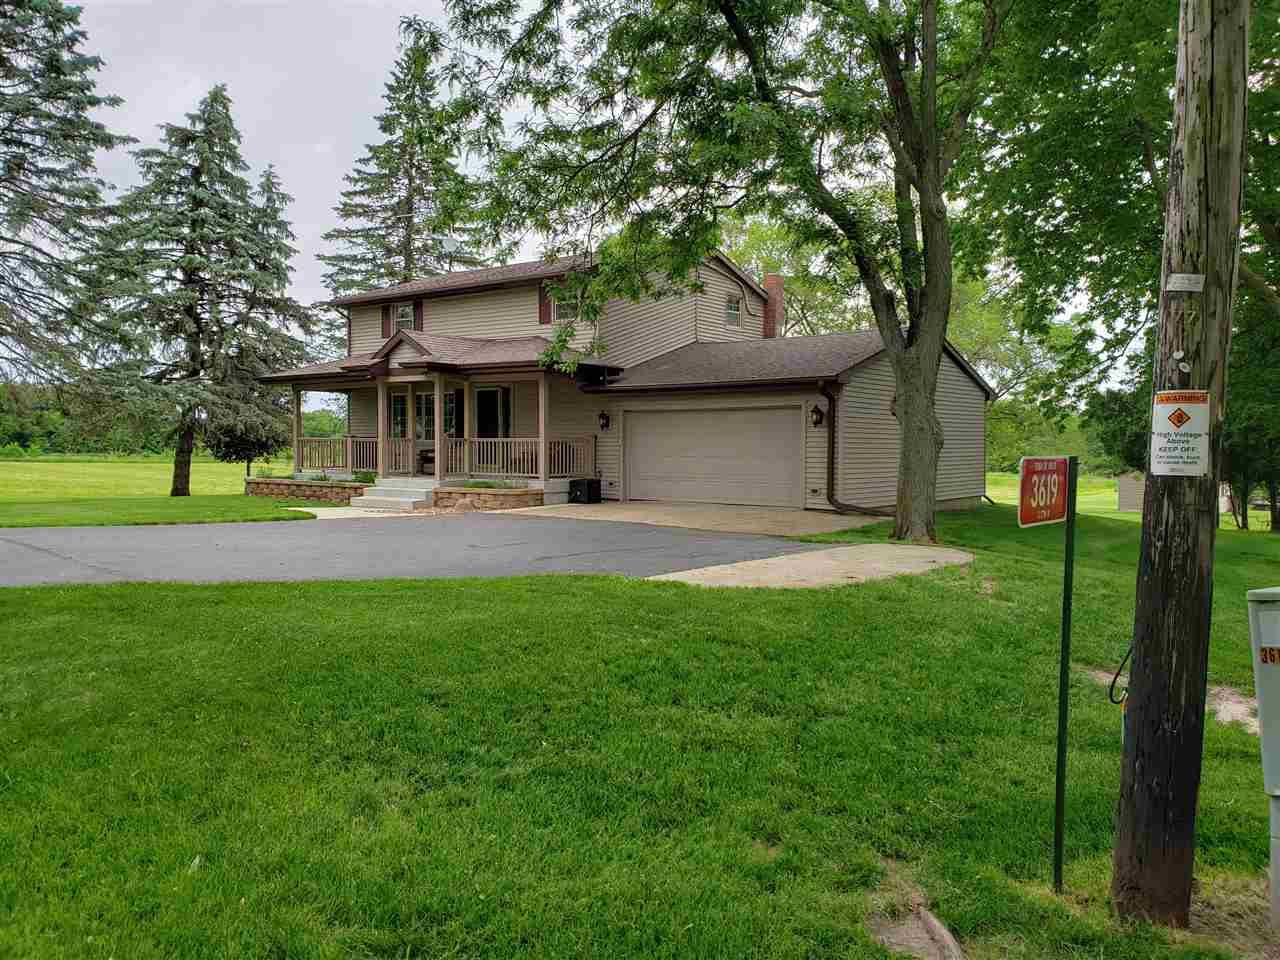 3619 S COUNTY ROAD D, Janesville, WI 53548-9223 - #: 1875260